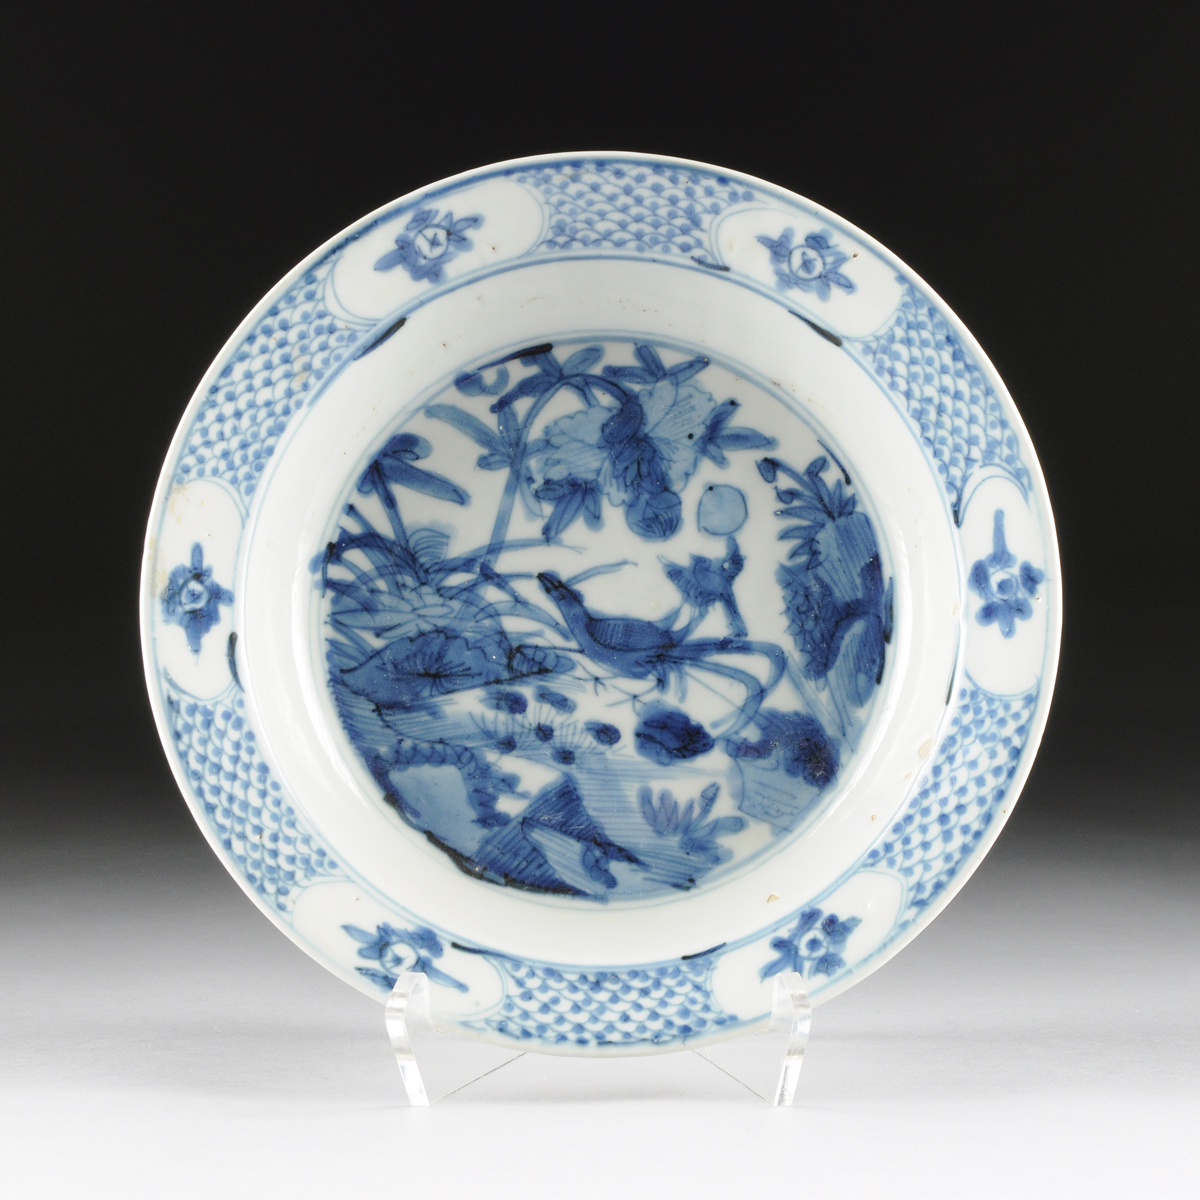 A CHINESE BLUE AND WHITE PORCELAIN DISH, LATE 19TH CENTURY,